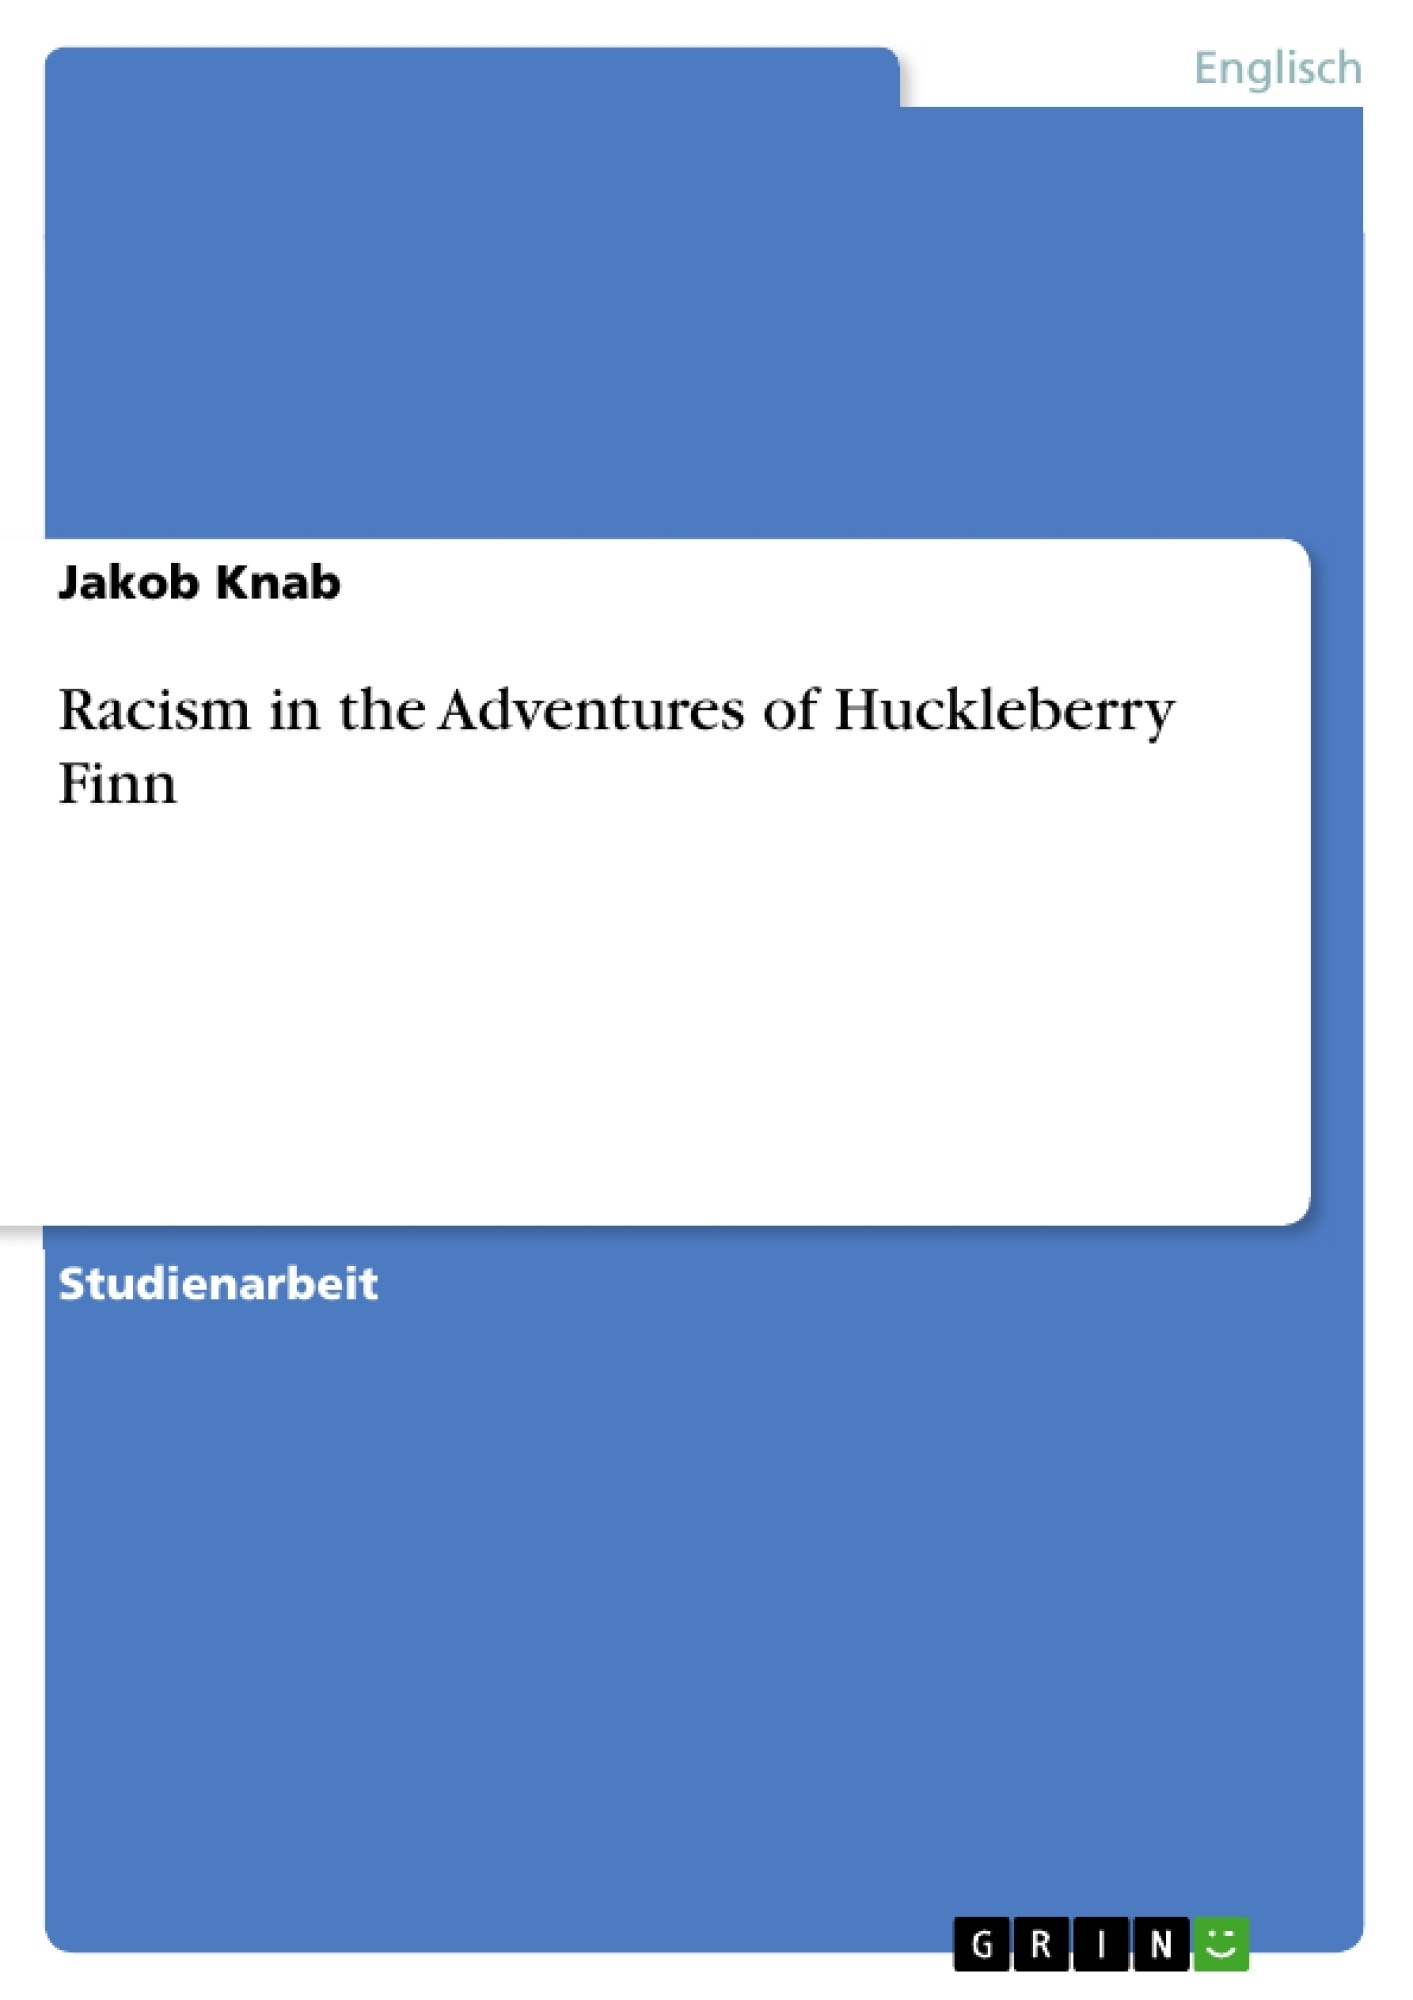 Titel: Racism in the Adventures of Huckleberry Finn